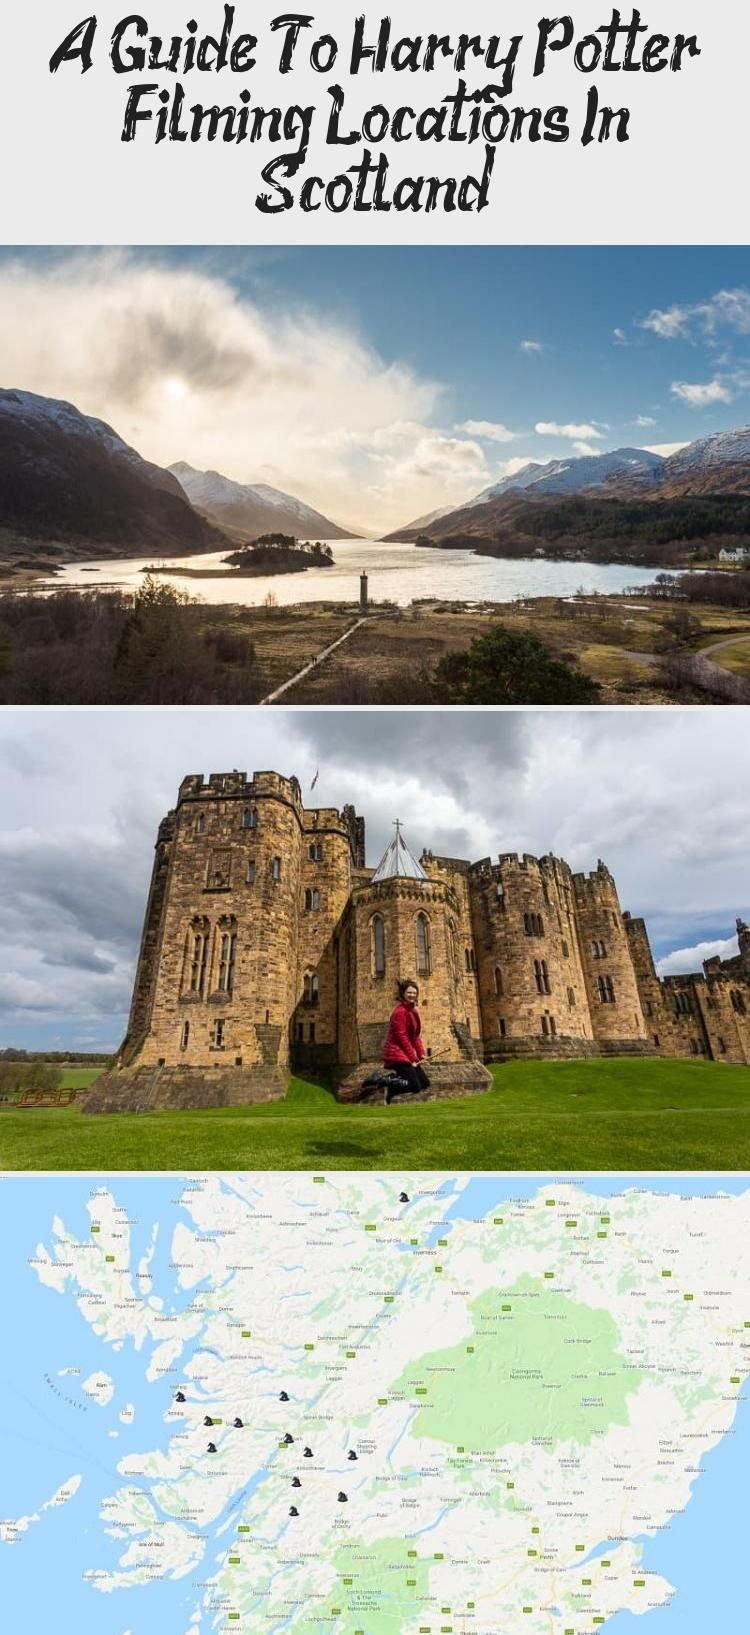 A Comprehensive And Detailed Guide To 12 Harry Potter Filming Locations In Scotland Including Filming Locations Harry Potter Filming Locations Movie Locations